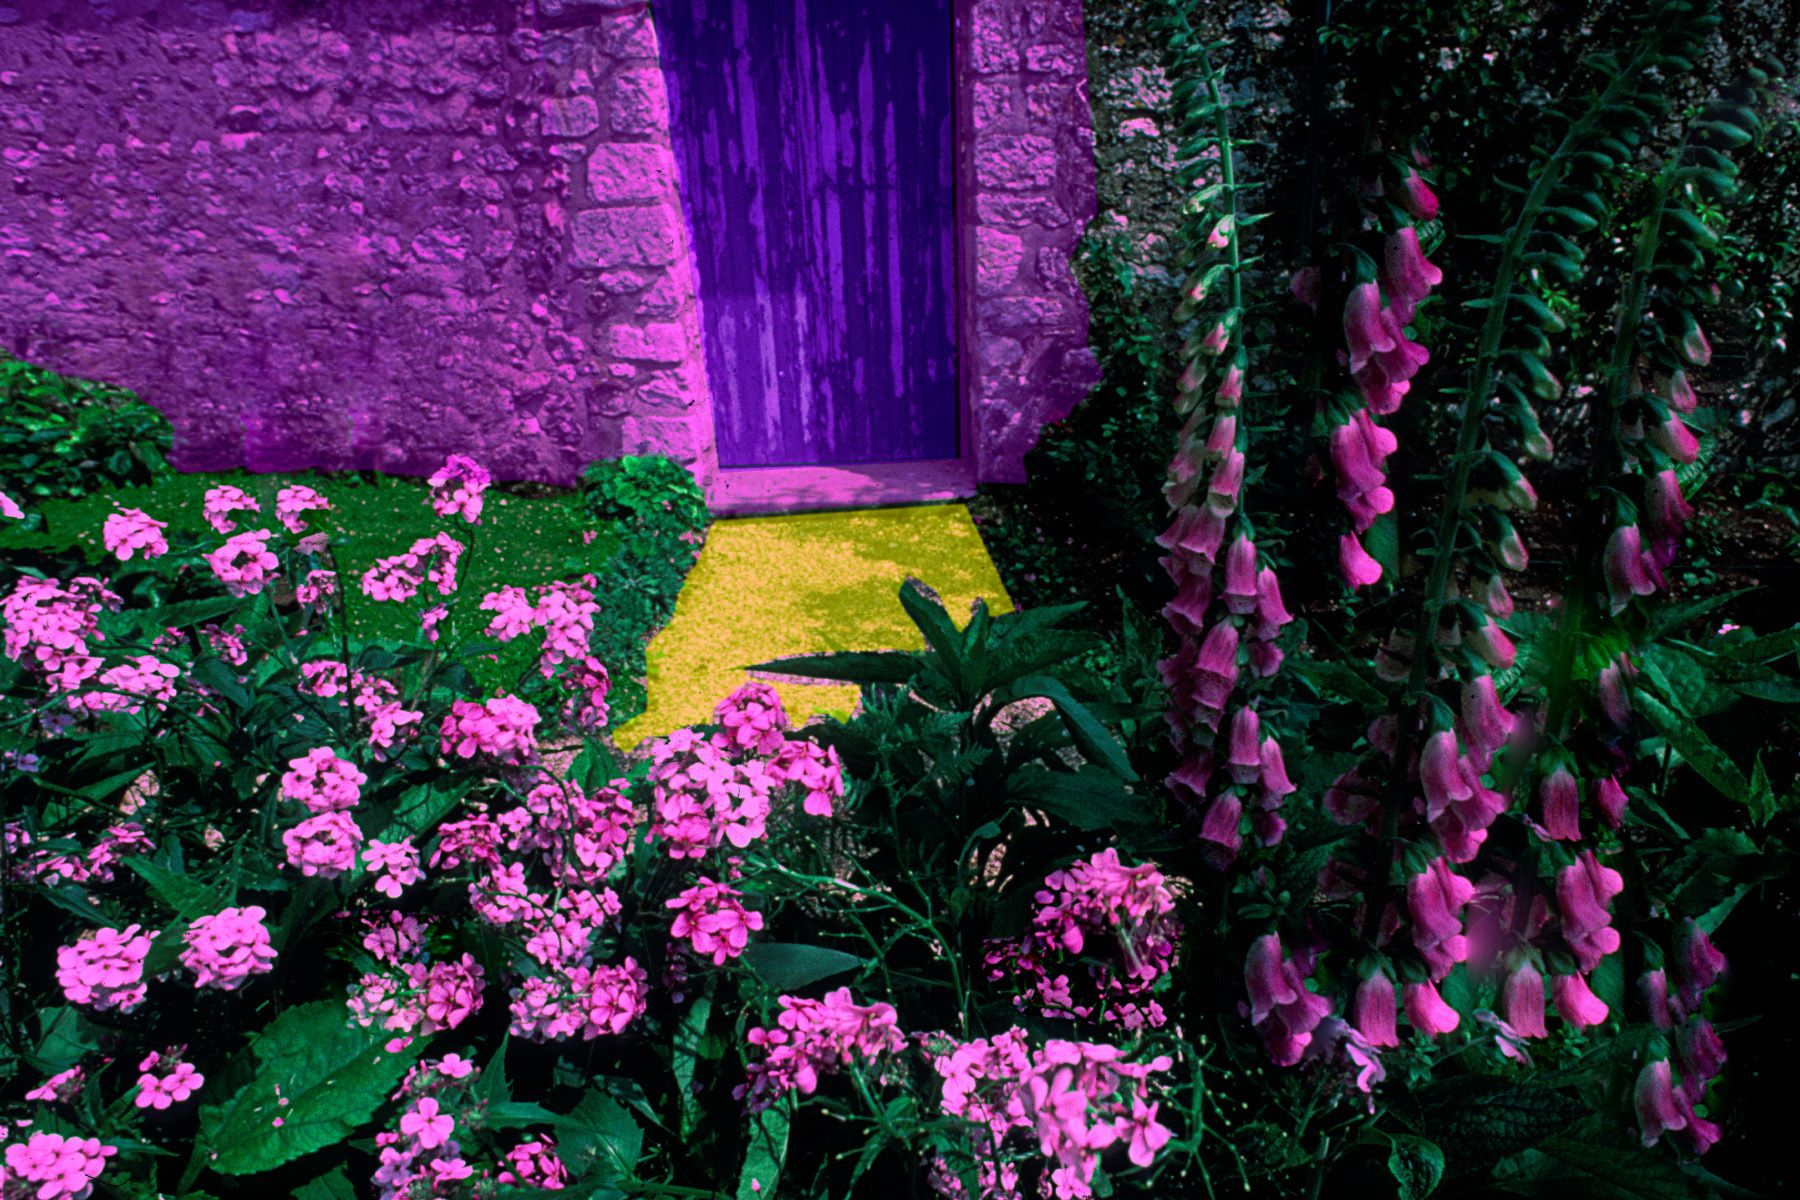 12_0_175_1m_gottlieb_monet_s_back_garden_gate.jpg